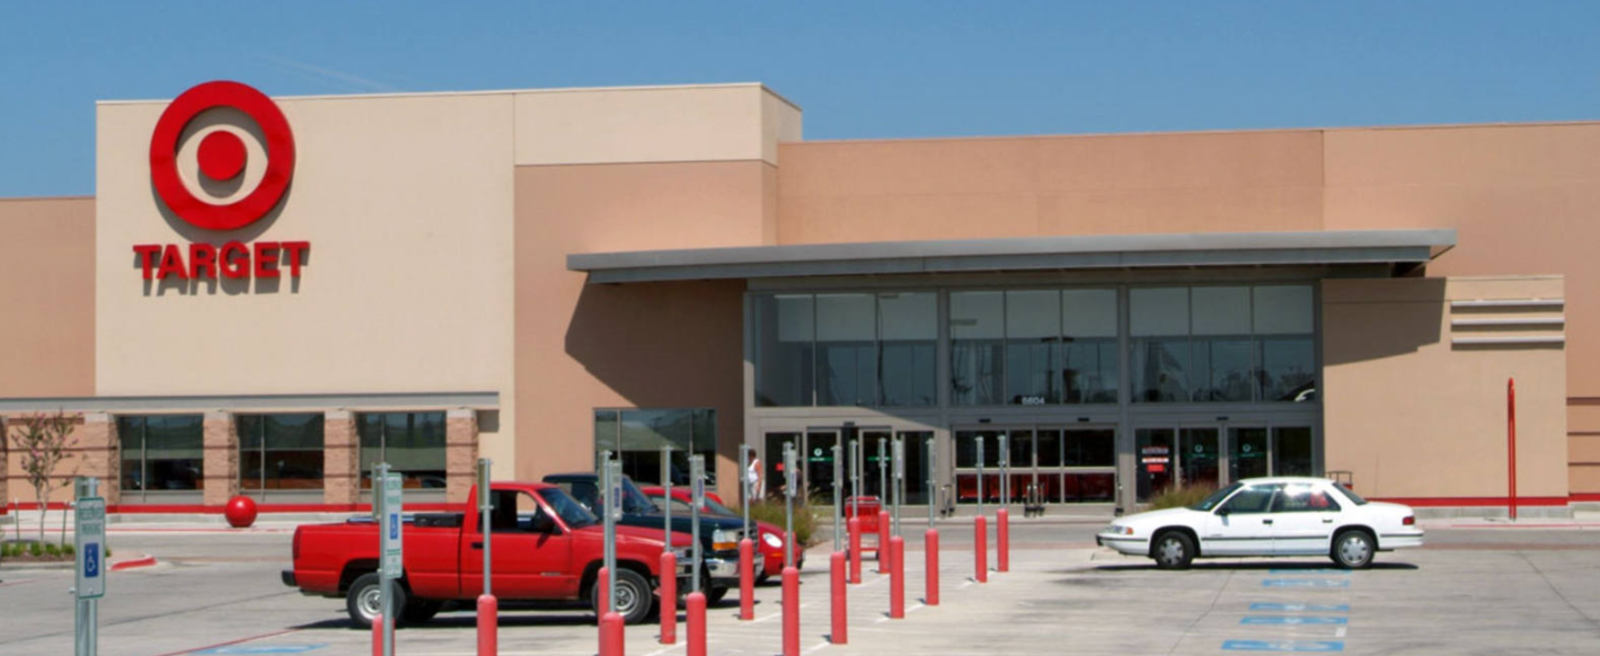 CBRE RetailLake Worth Towne Crossing6548-6636 Lake Worth Blvd (Lake Worth Blvd & Paul Meador Rd)  Photo